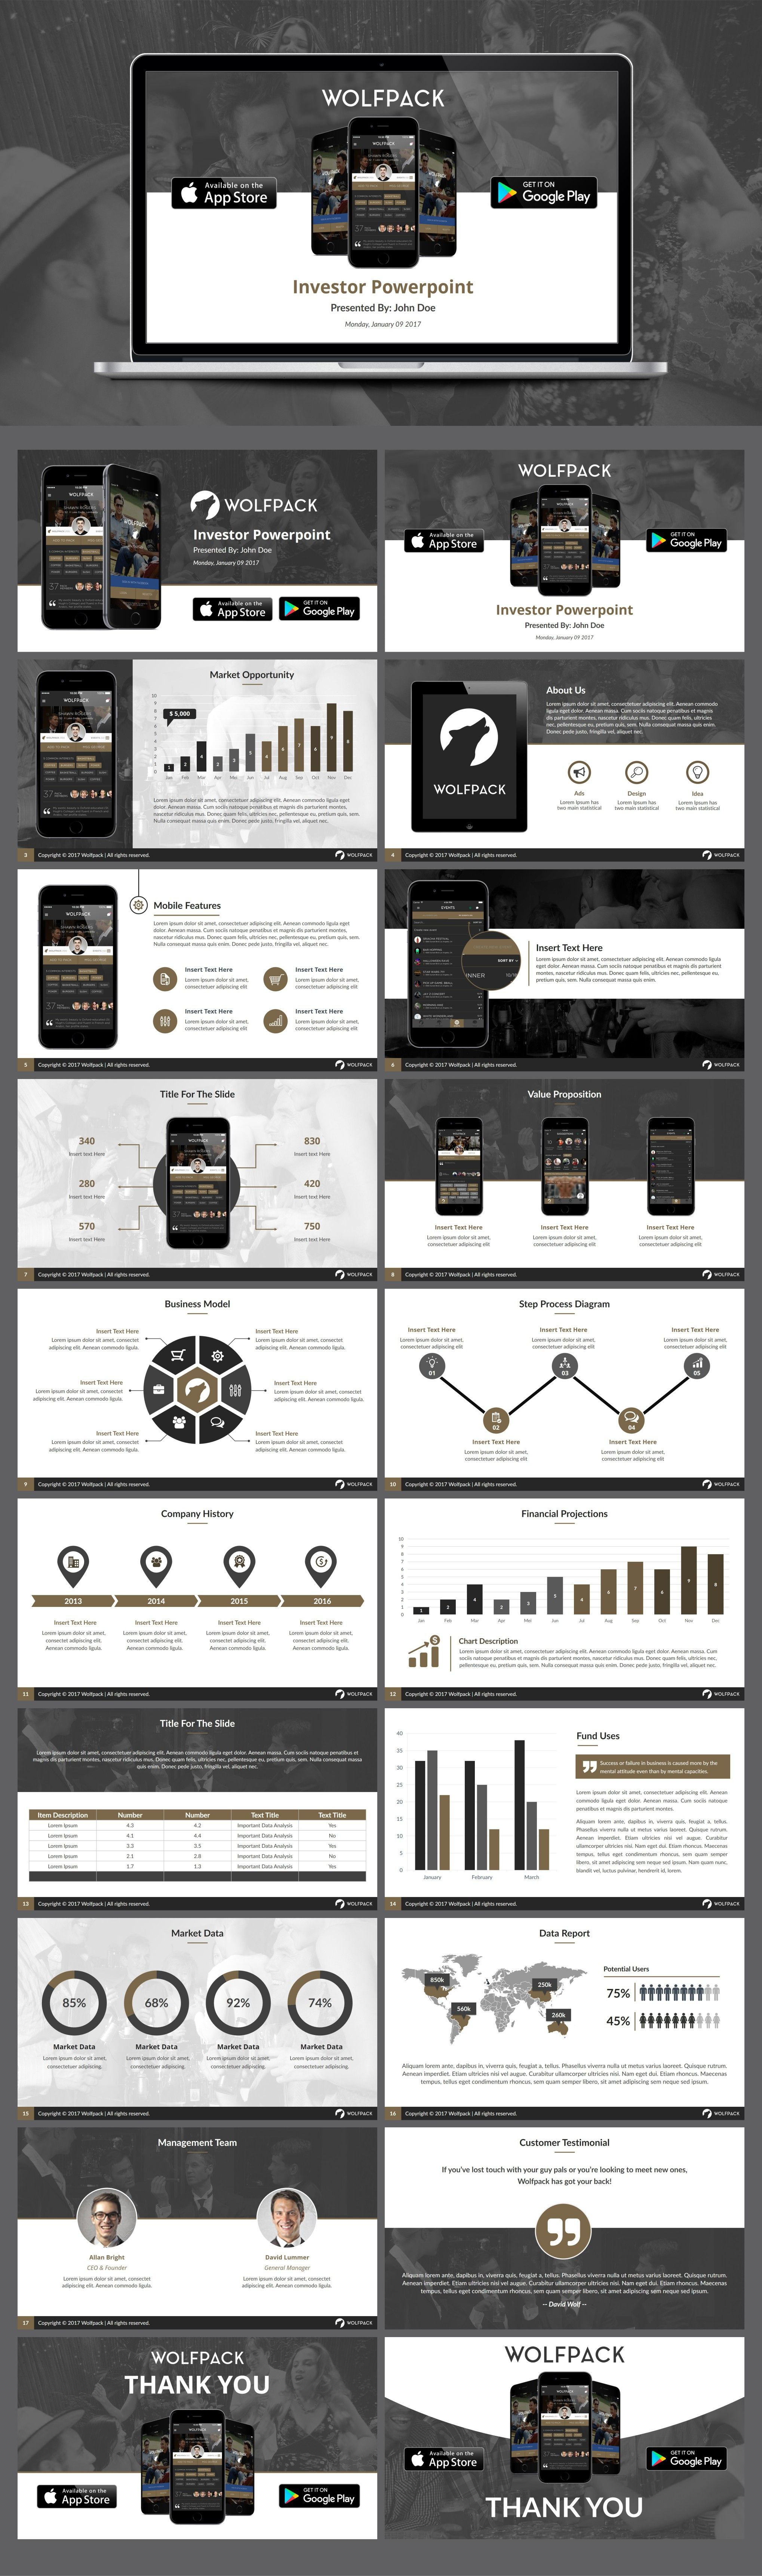 Designs | Design a Pitch Deck of a Cool App | PowerPoint template ...